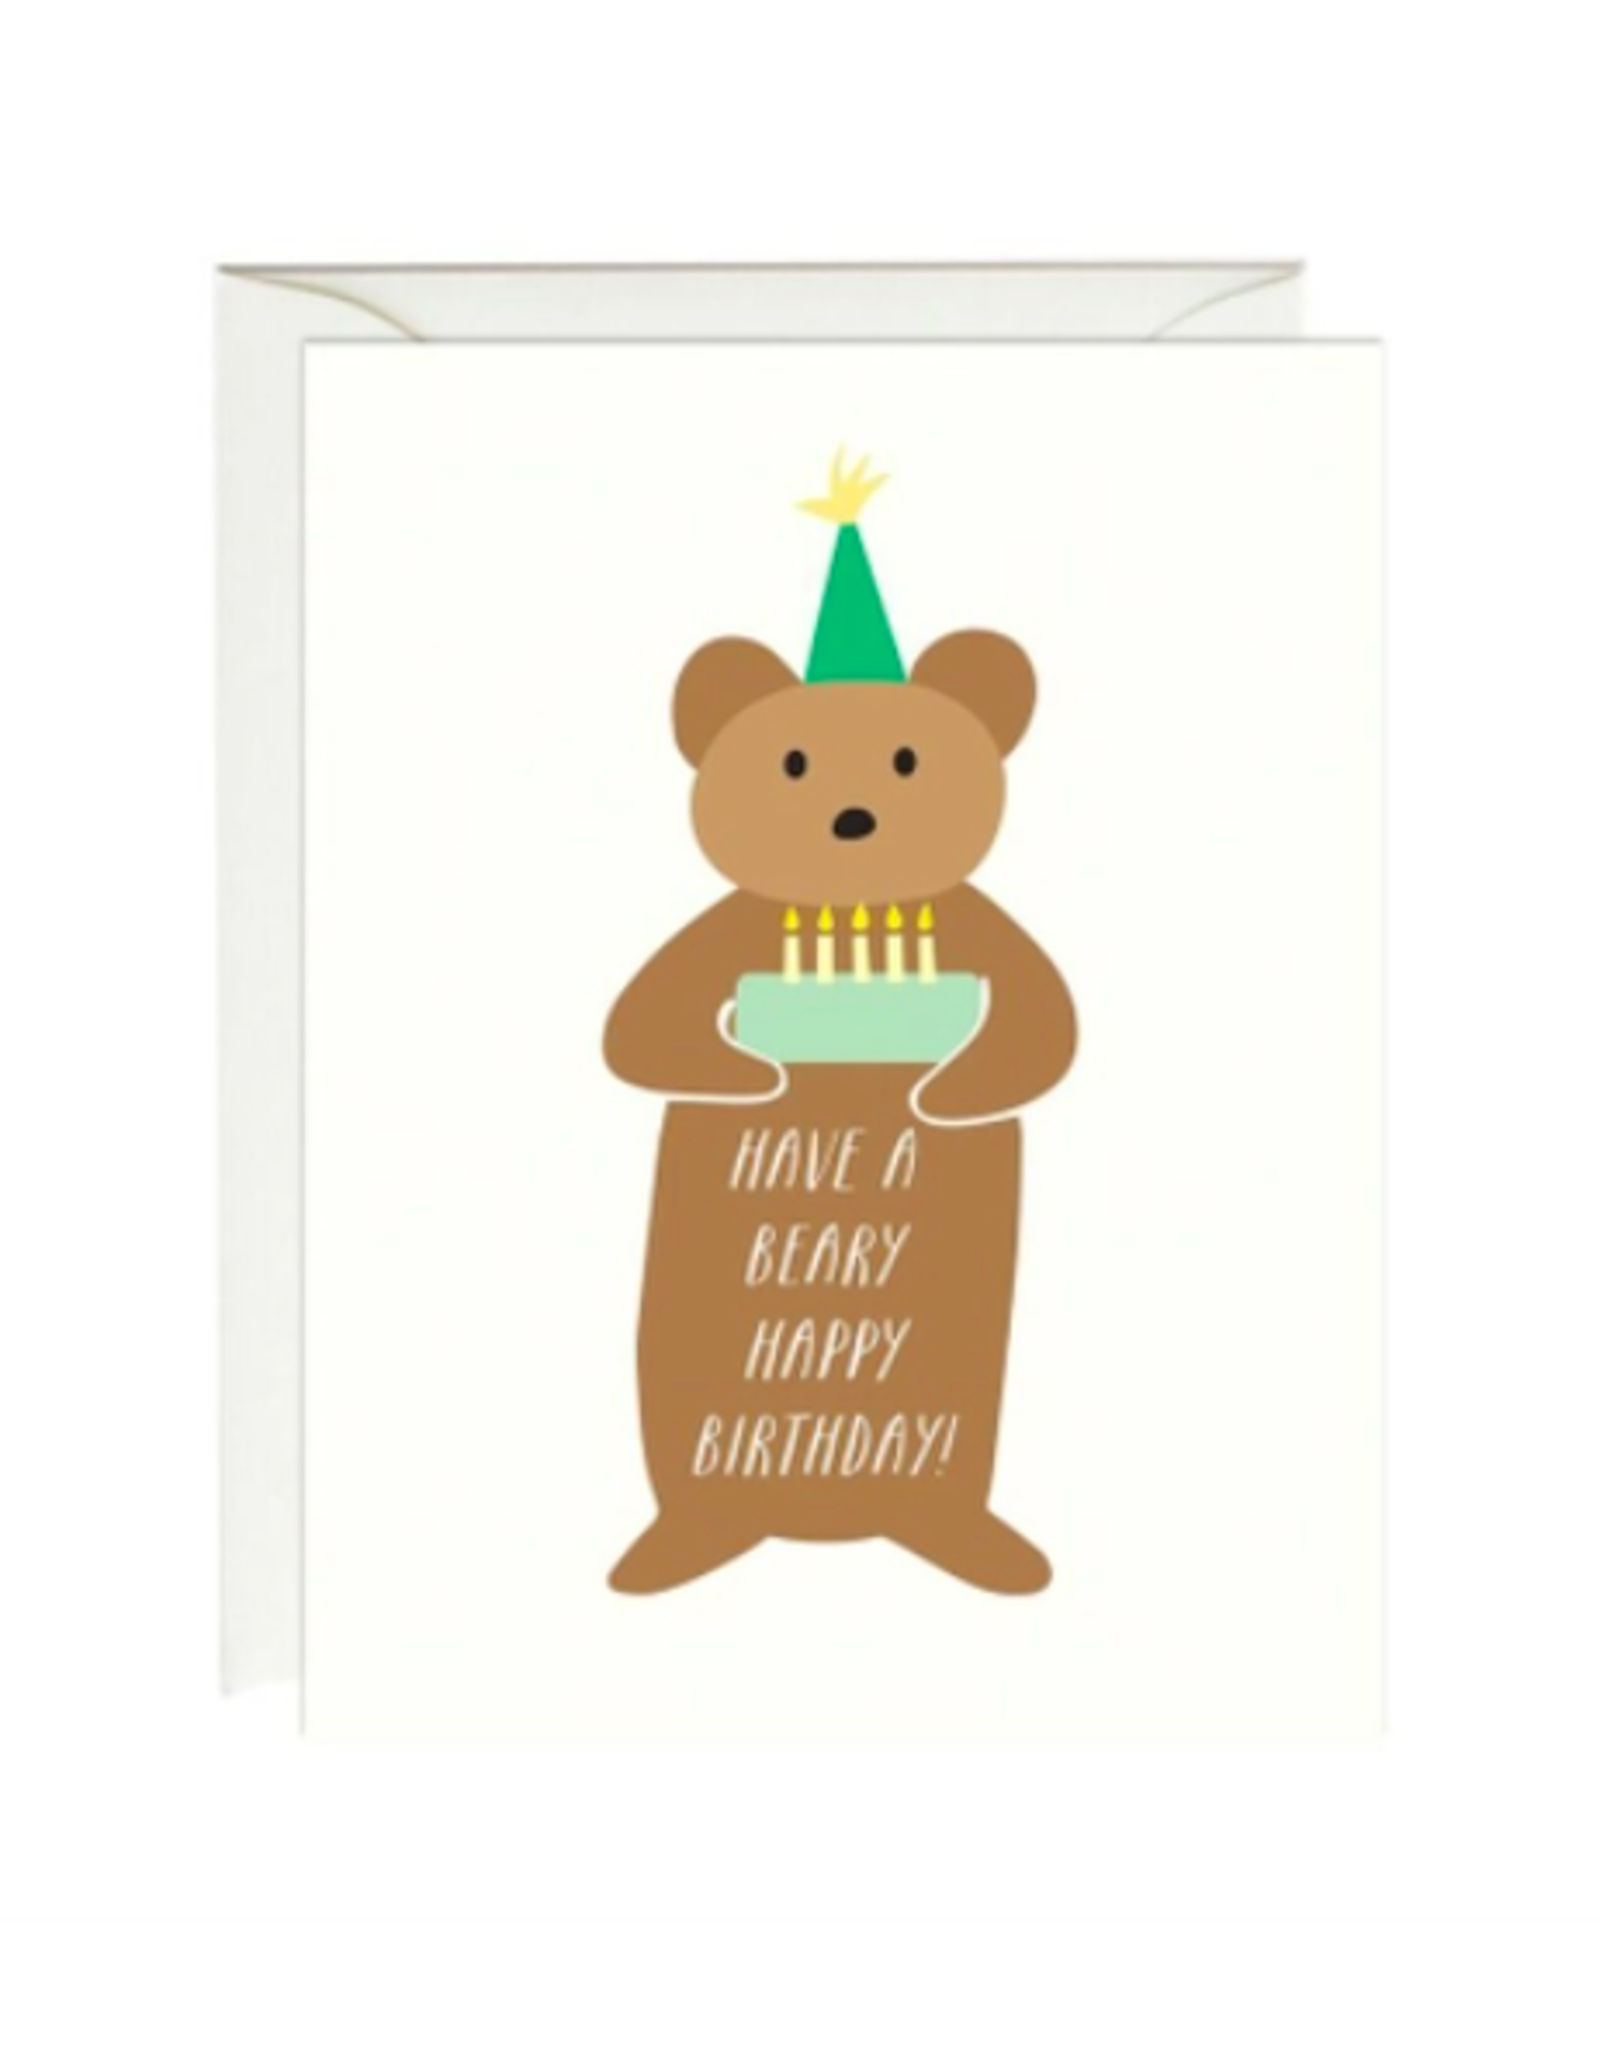 Paula and Waffle Beary Happy Birthday Card